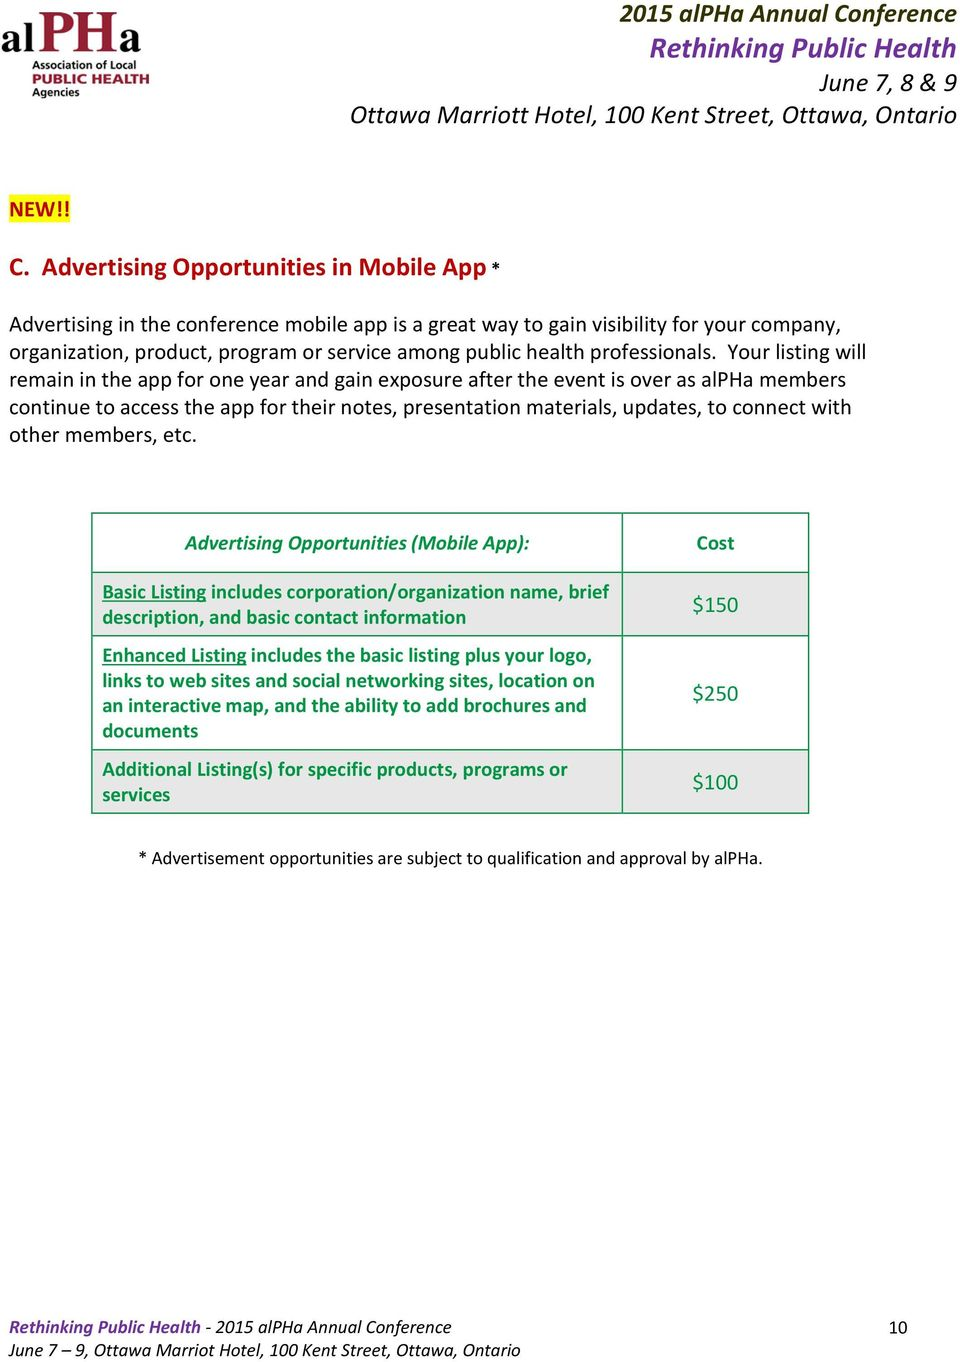 Advertising Opportunities in Mobile App * Advertising in the conference mobile app is a great way to gain visibility for your company, organization, product, program or service among public health